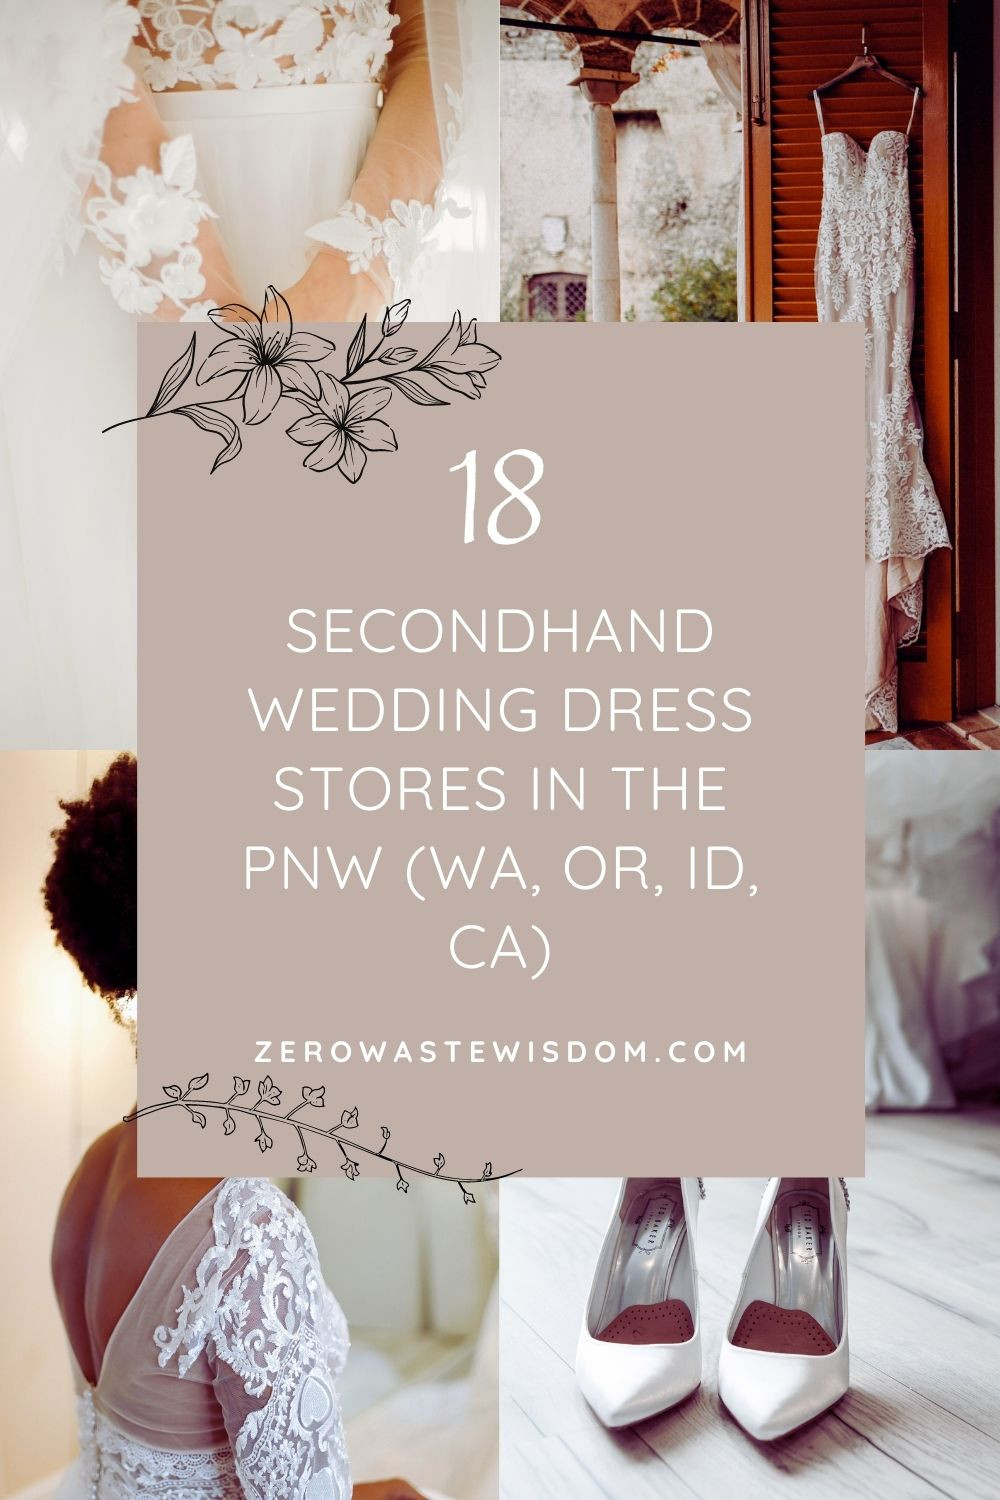 18 secondhand wedding dress stores in the PNW Pinterest Pin